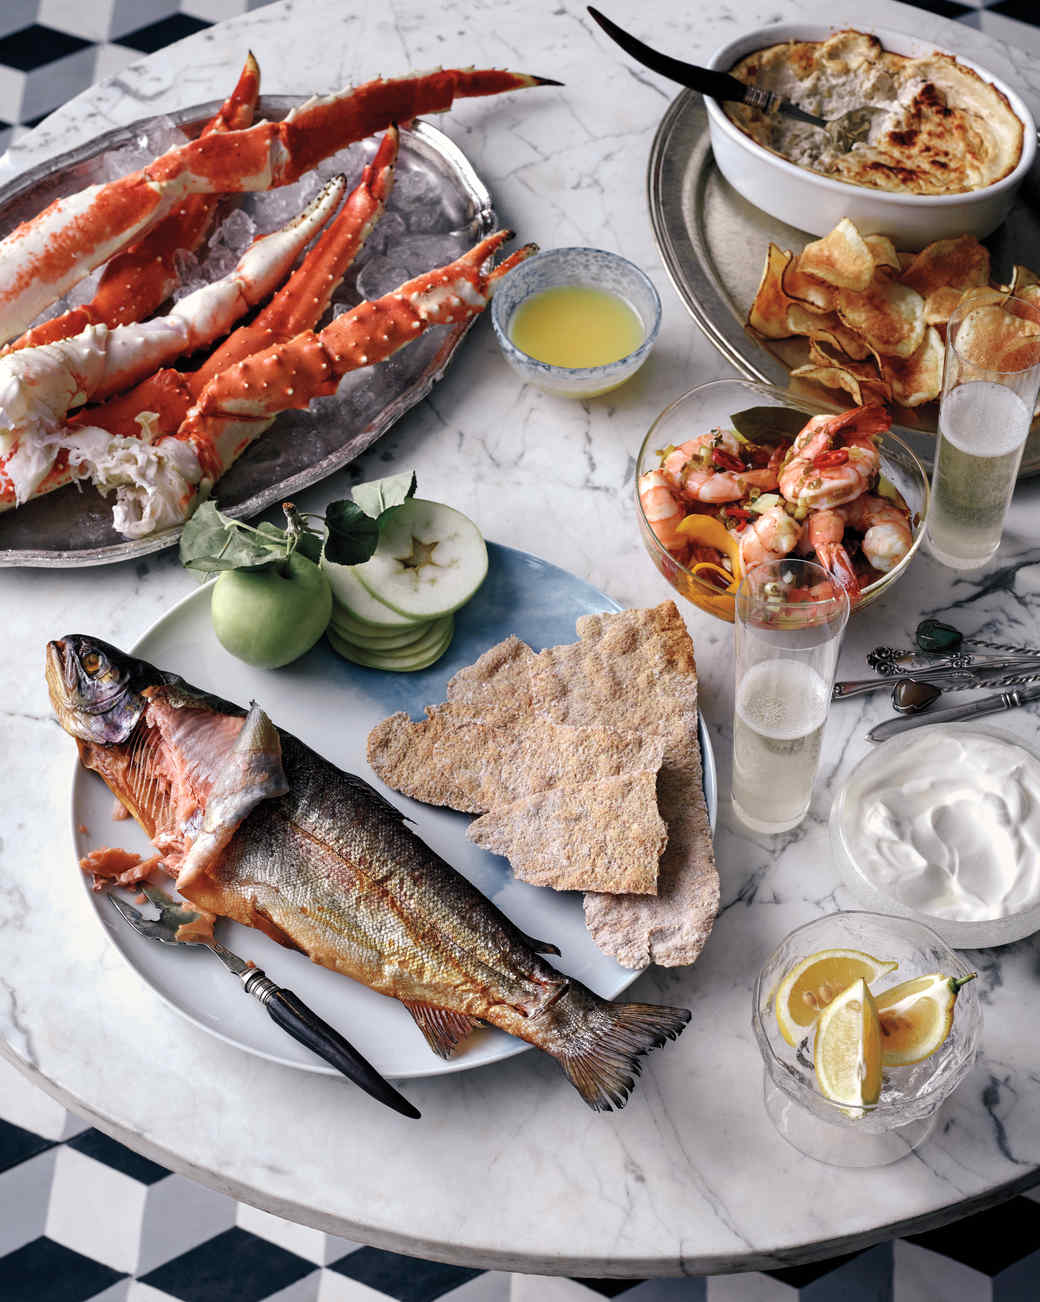 thanksgiving-trout-seafood-starters-0075-d112352.jpg